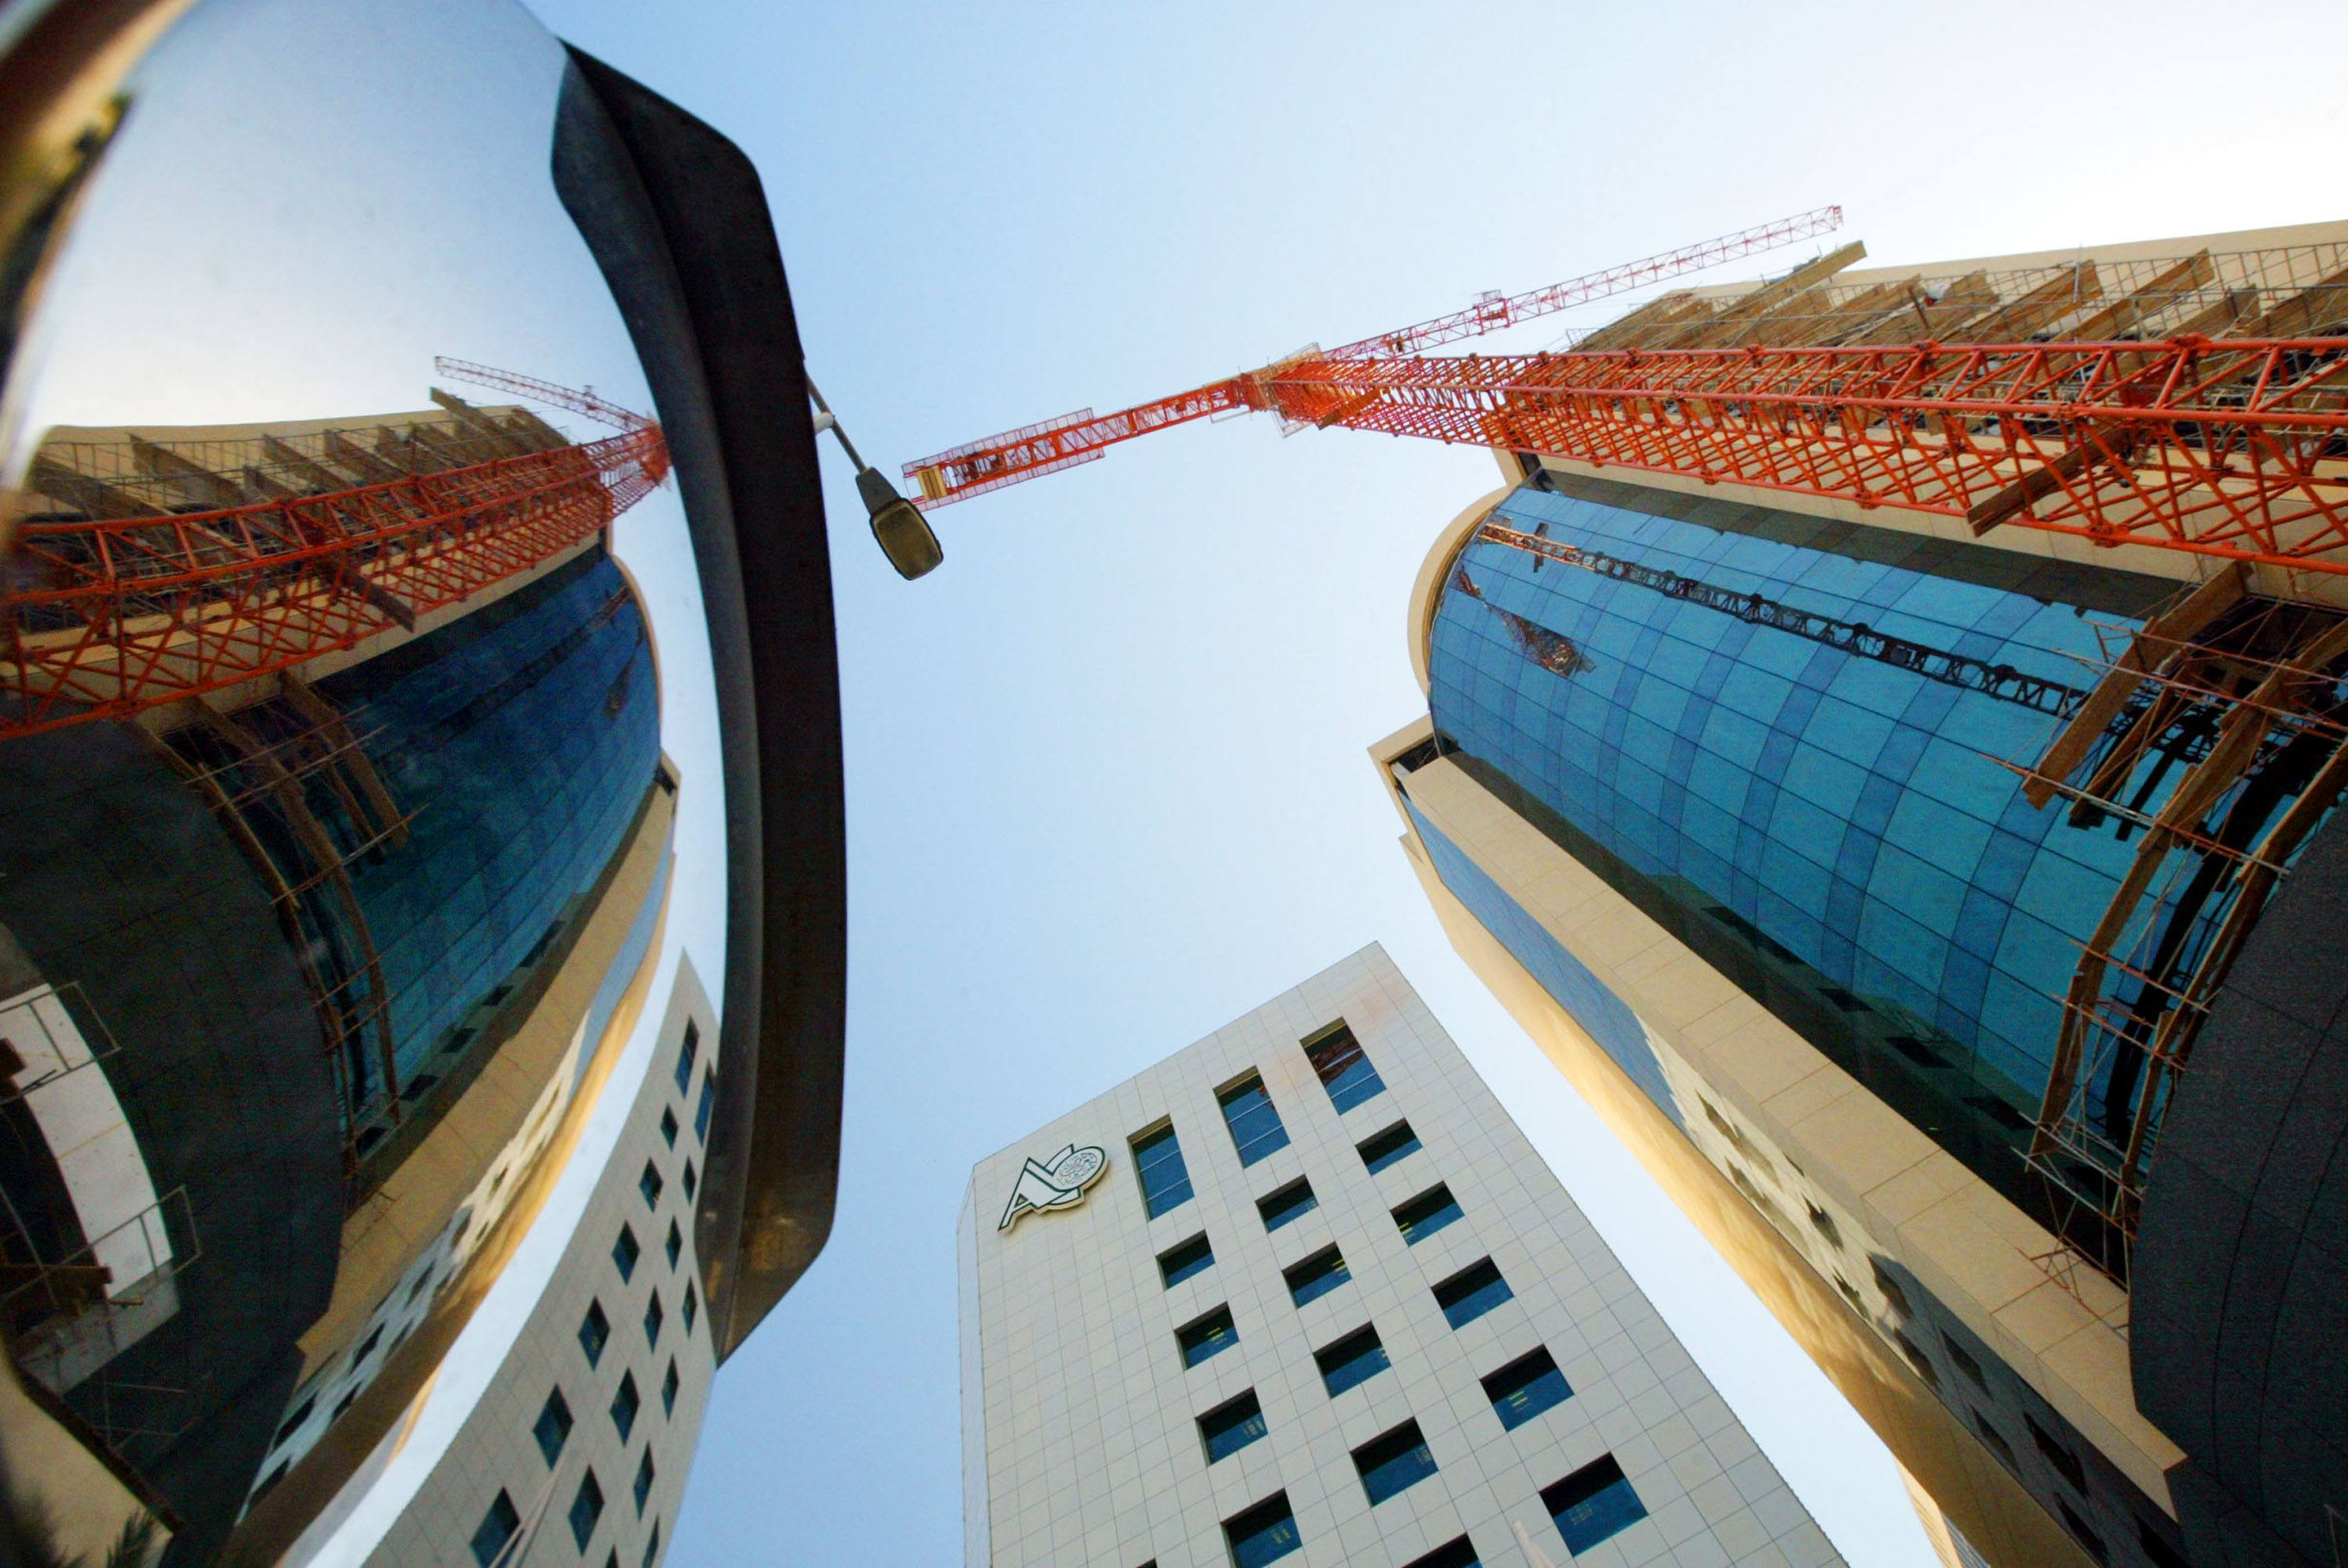 Buildings under construction in Bahrain